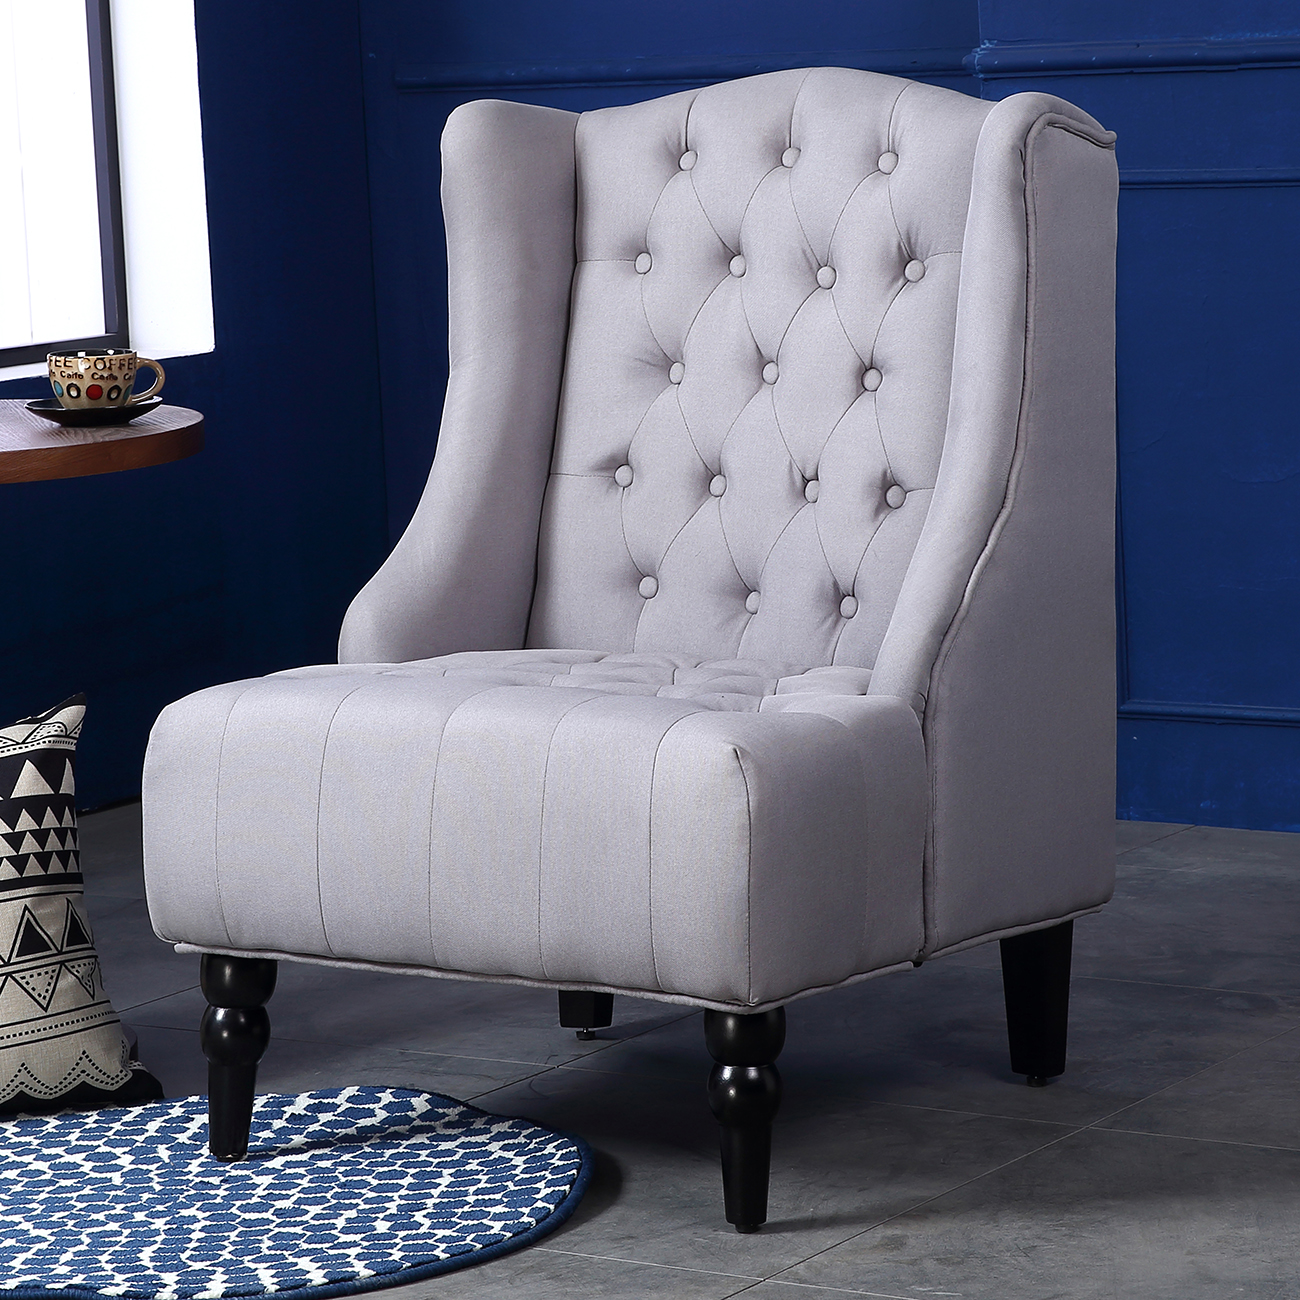 Wingback accent chair tall high back living room tufted - High back living room chairs suppliers ...